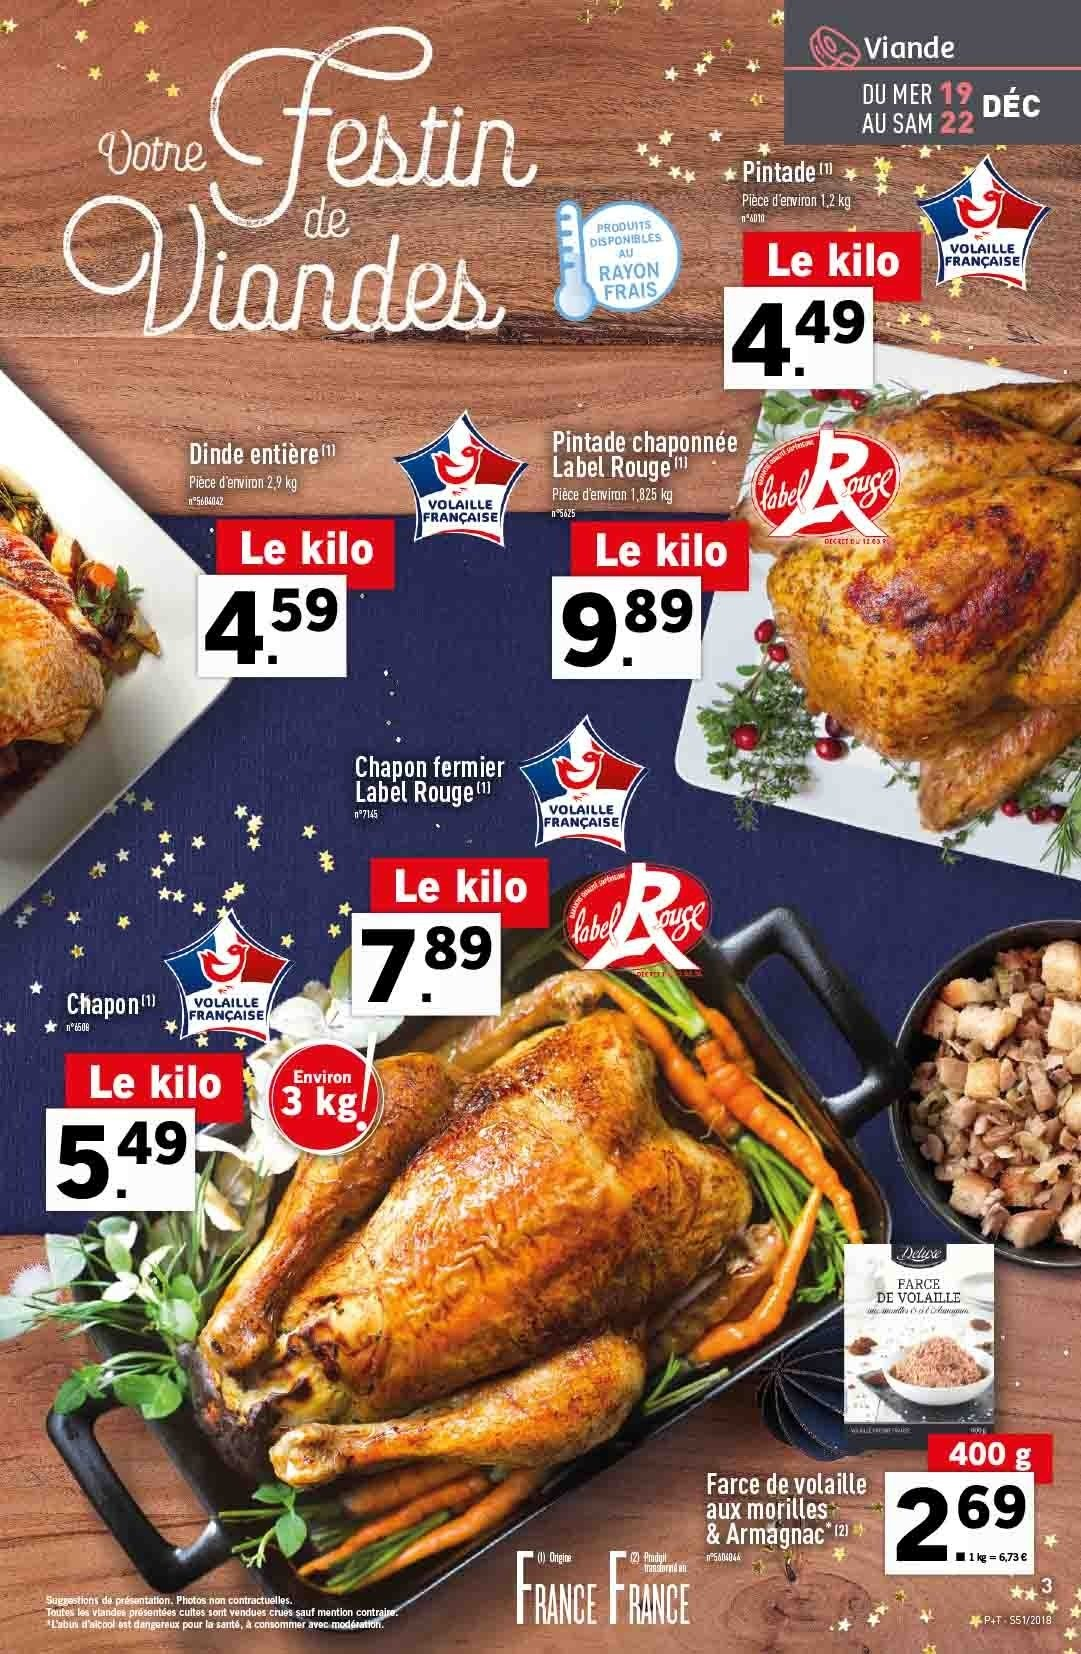 Catalogue Lidl - 19.12.2018 - 24.12.2018. Page 3.